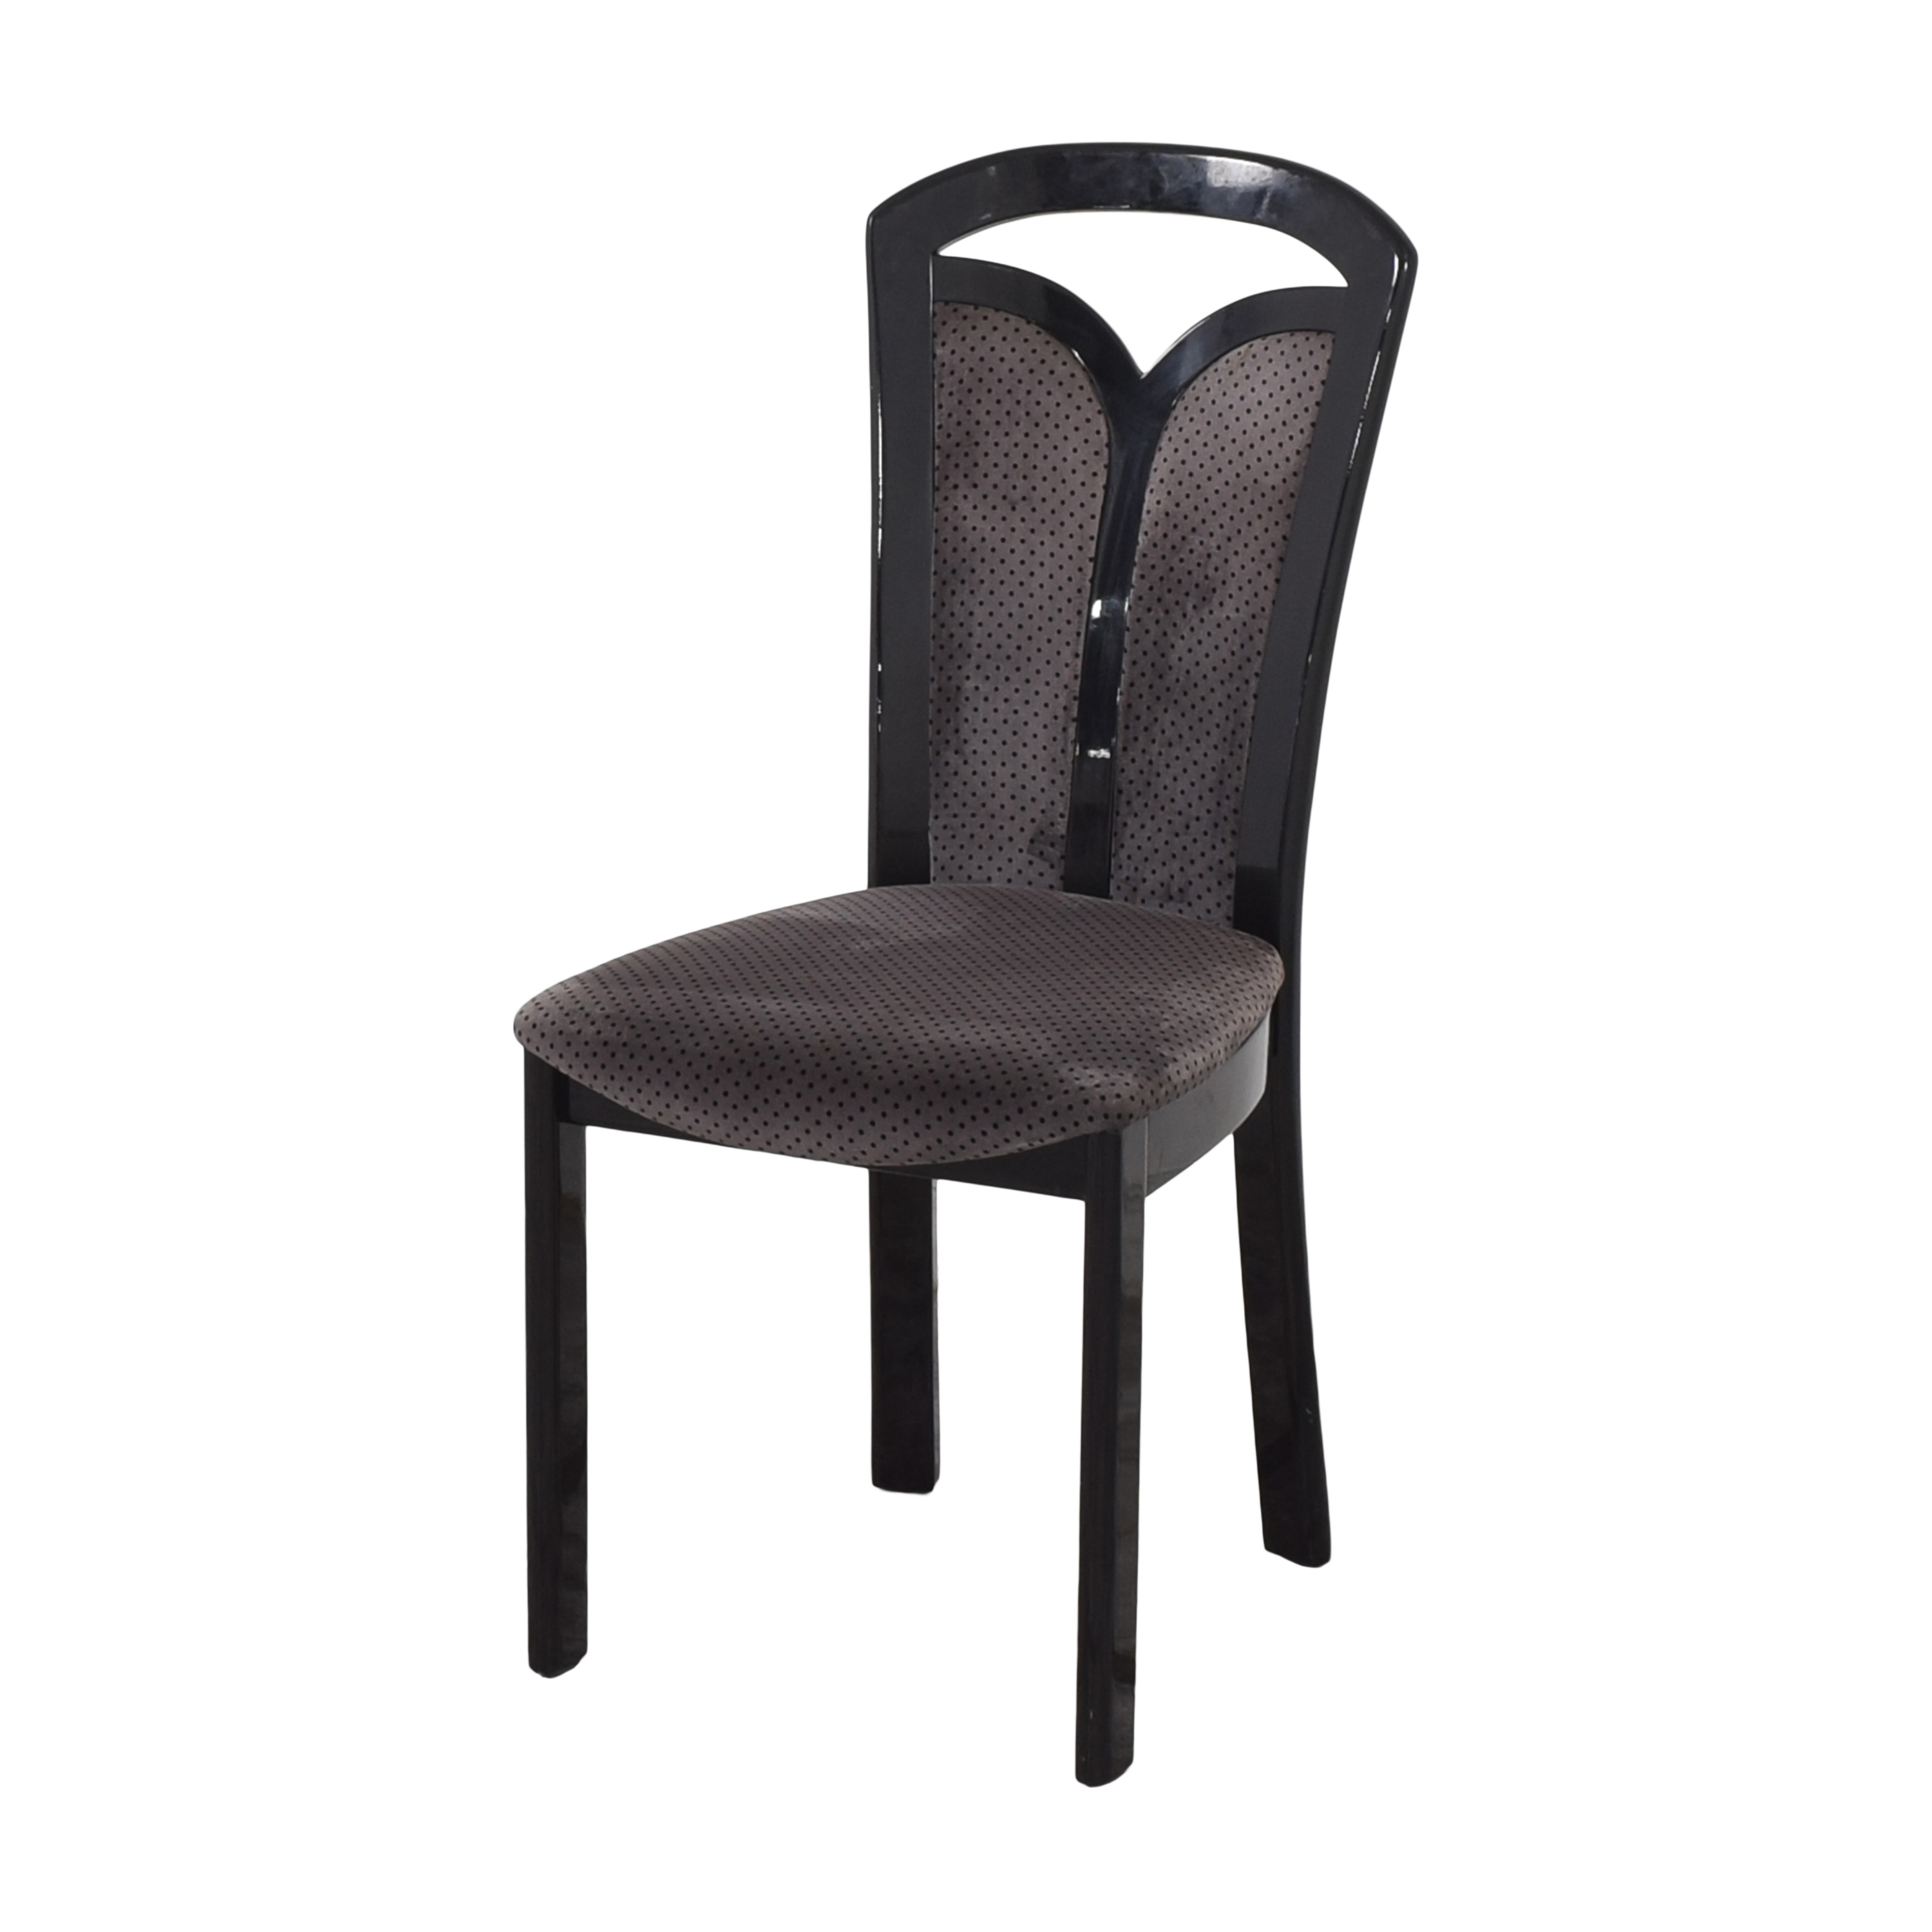 Maurice Villency Maurice Villency High Back Dining Chairs used